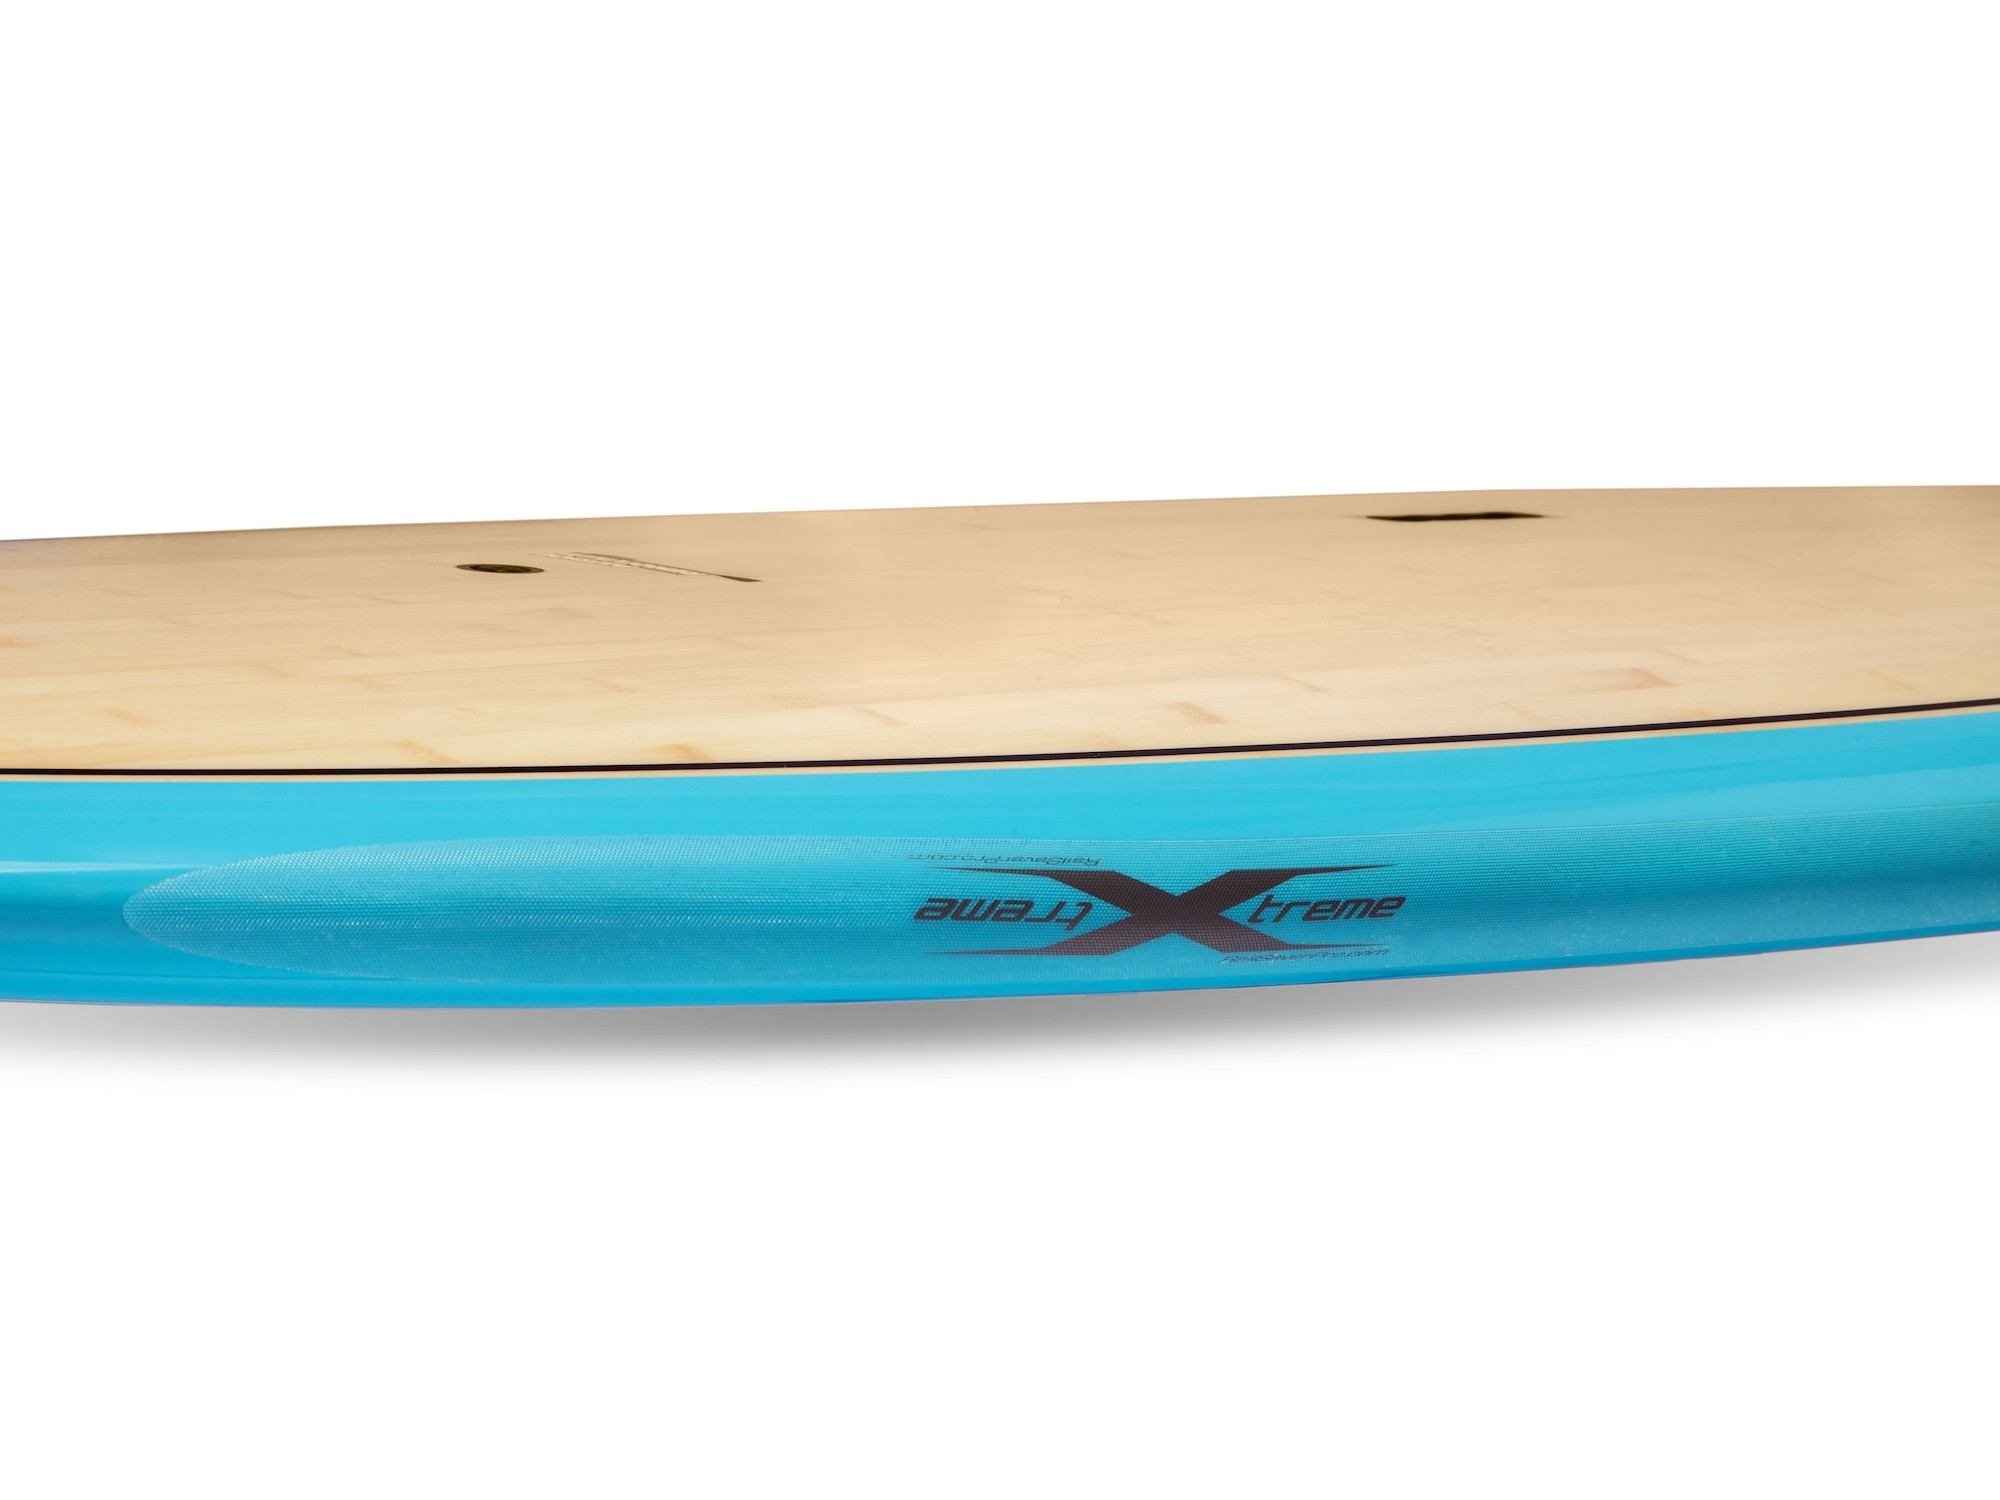 Xtreme transparent rail saver for short boards